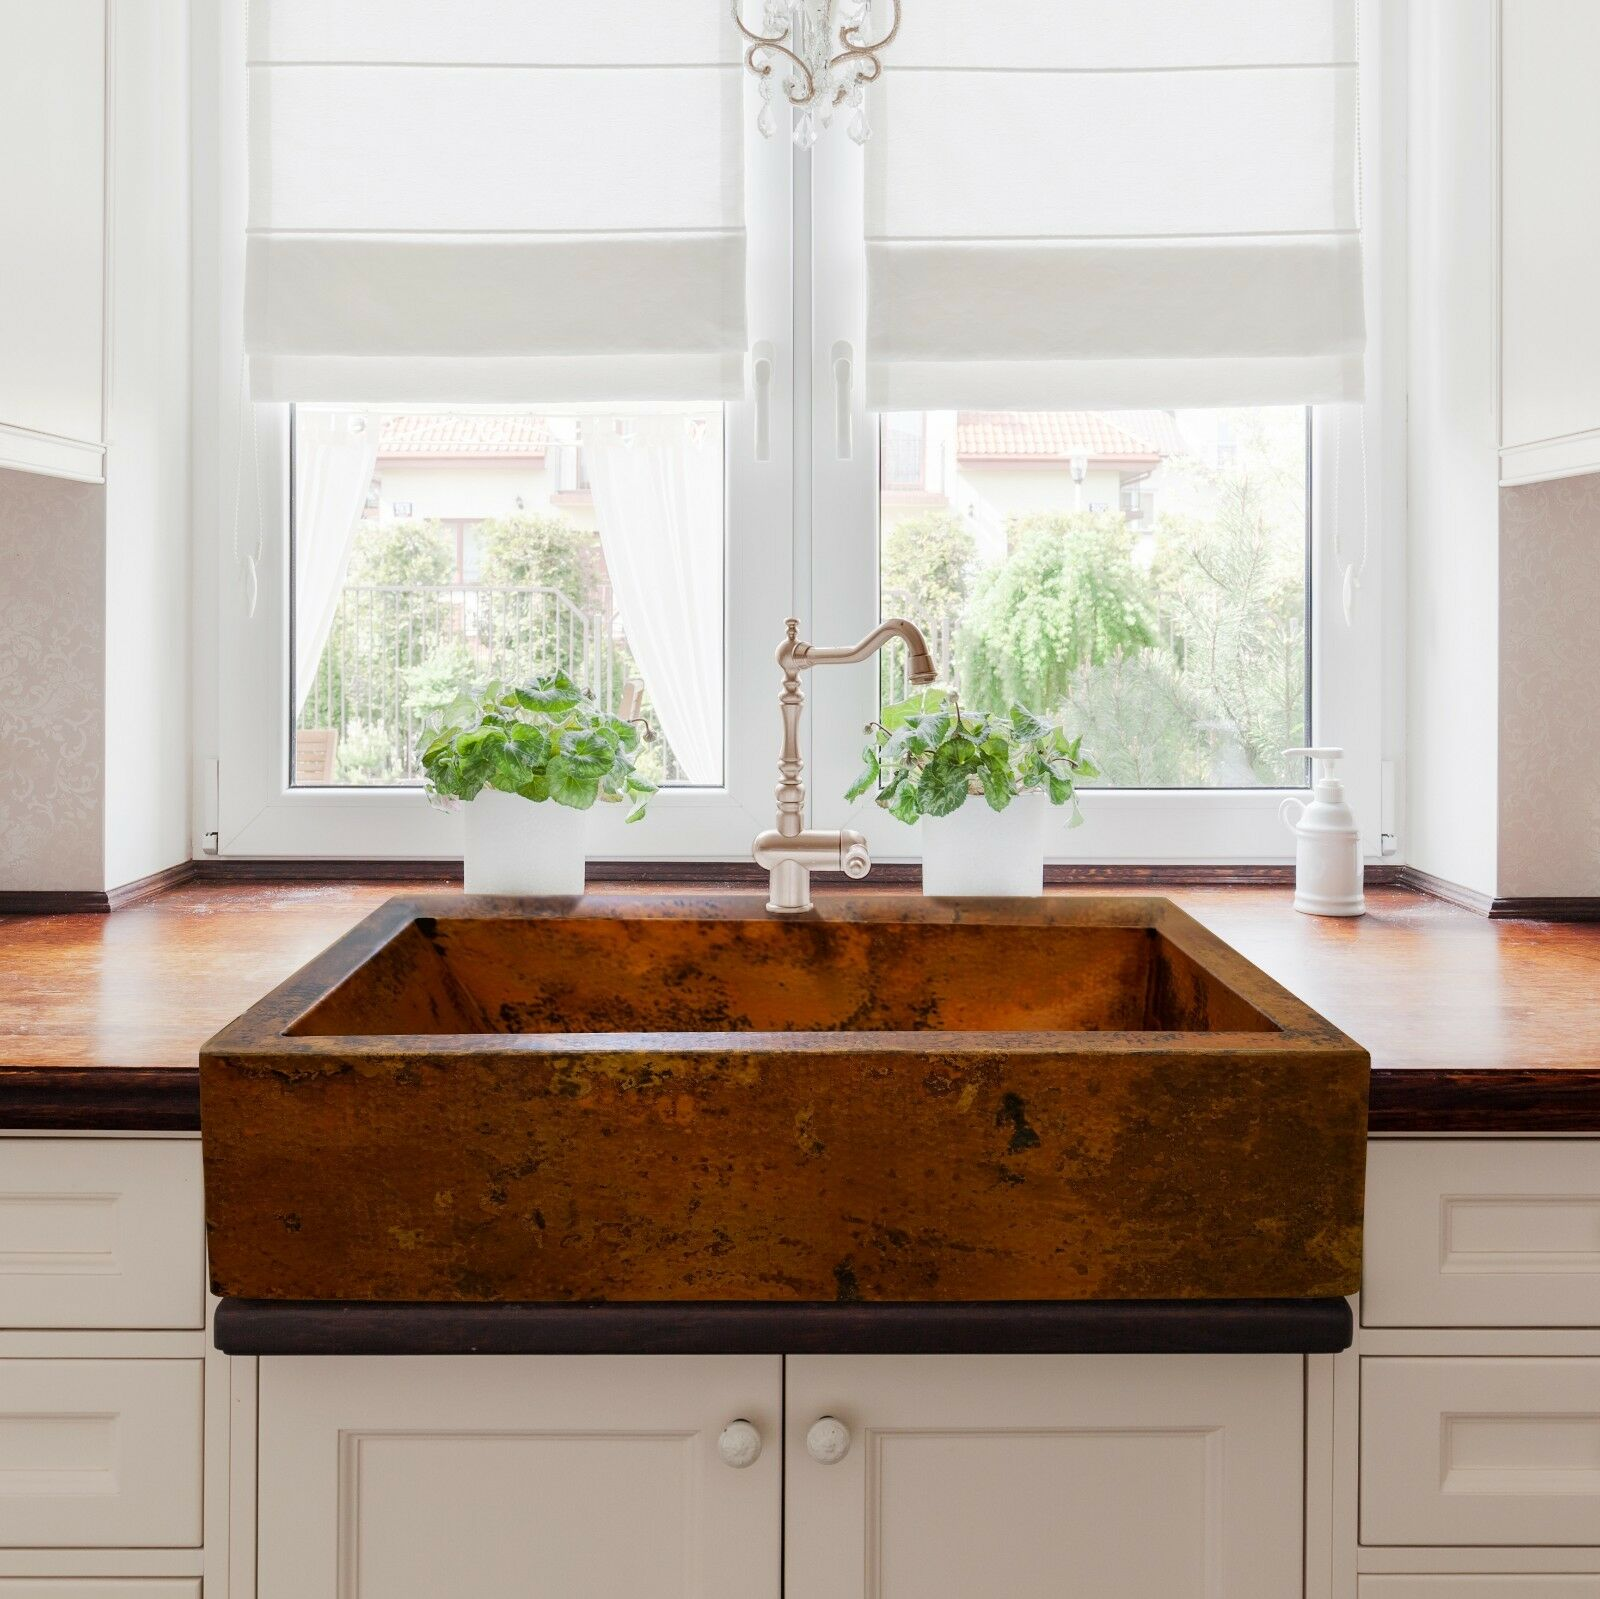 hammered copper farmhouse kitchen sink 36 x22 natural on kitchens with farmhouse sinks id=65886